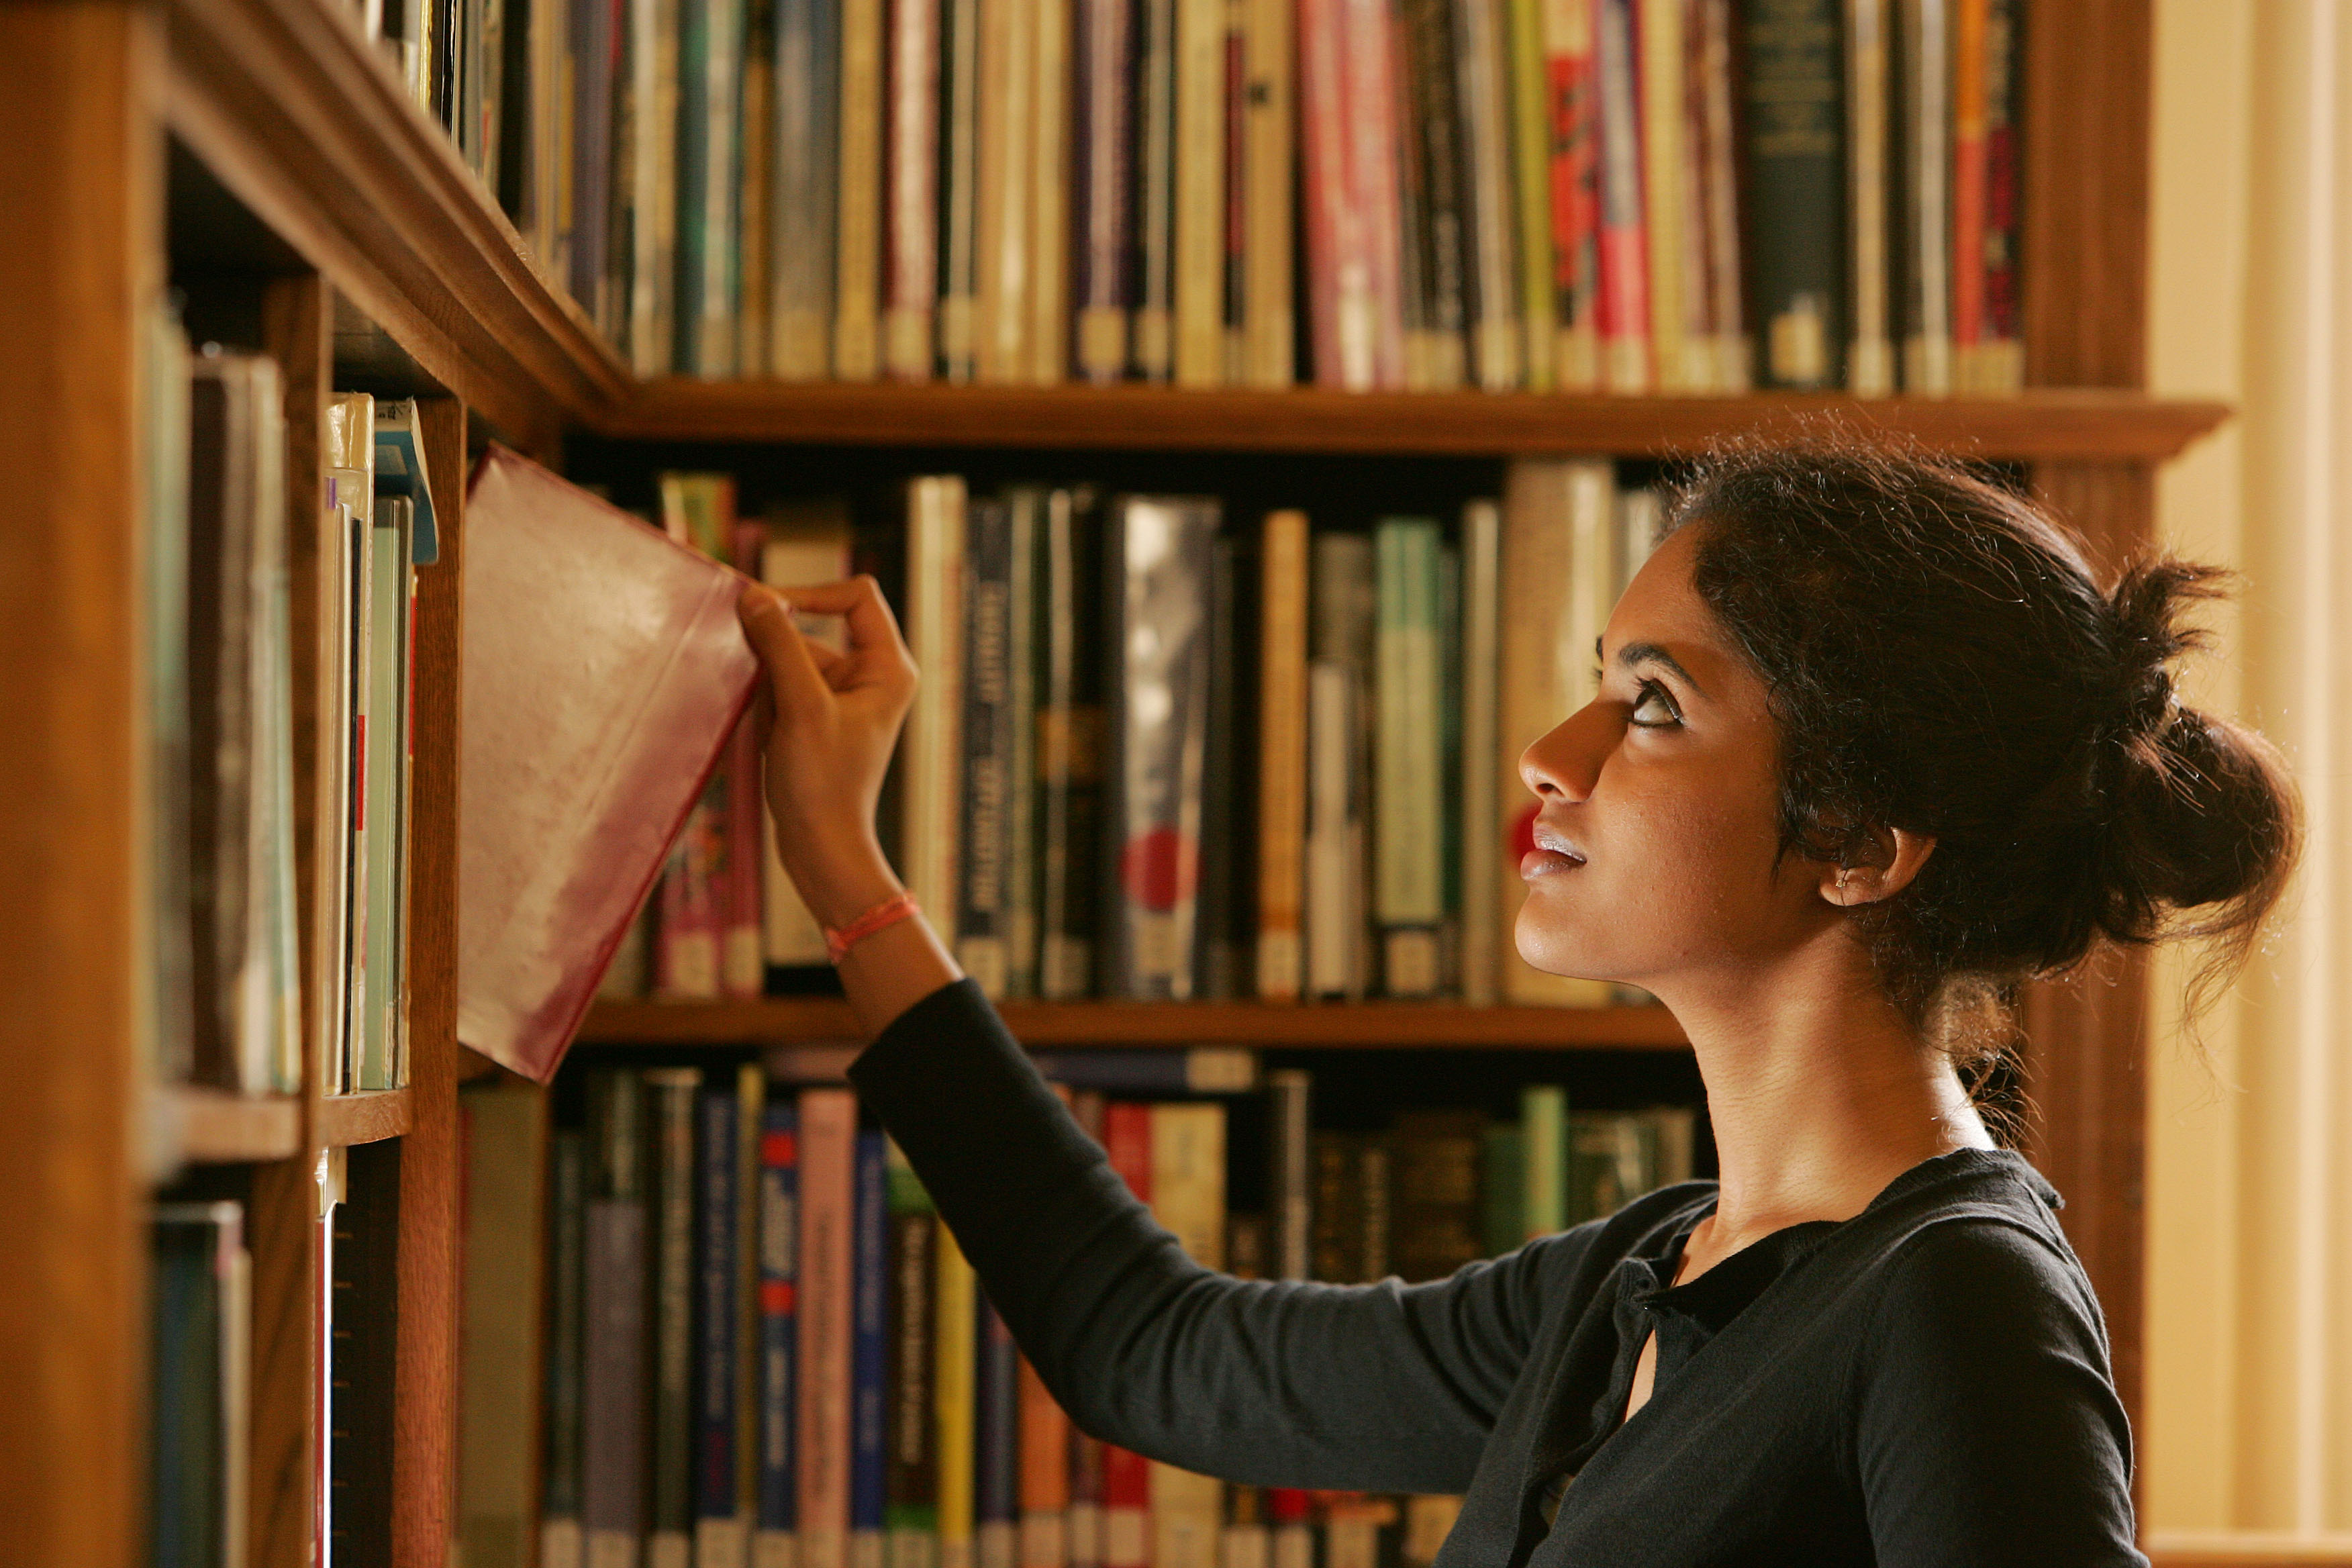 Photo of a student in the library choosing a book from the shelf